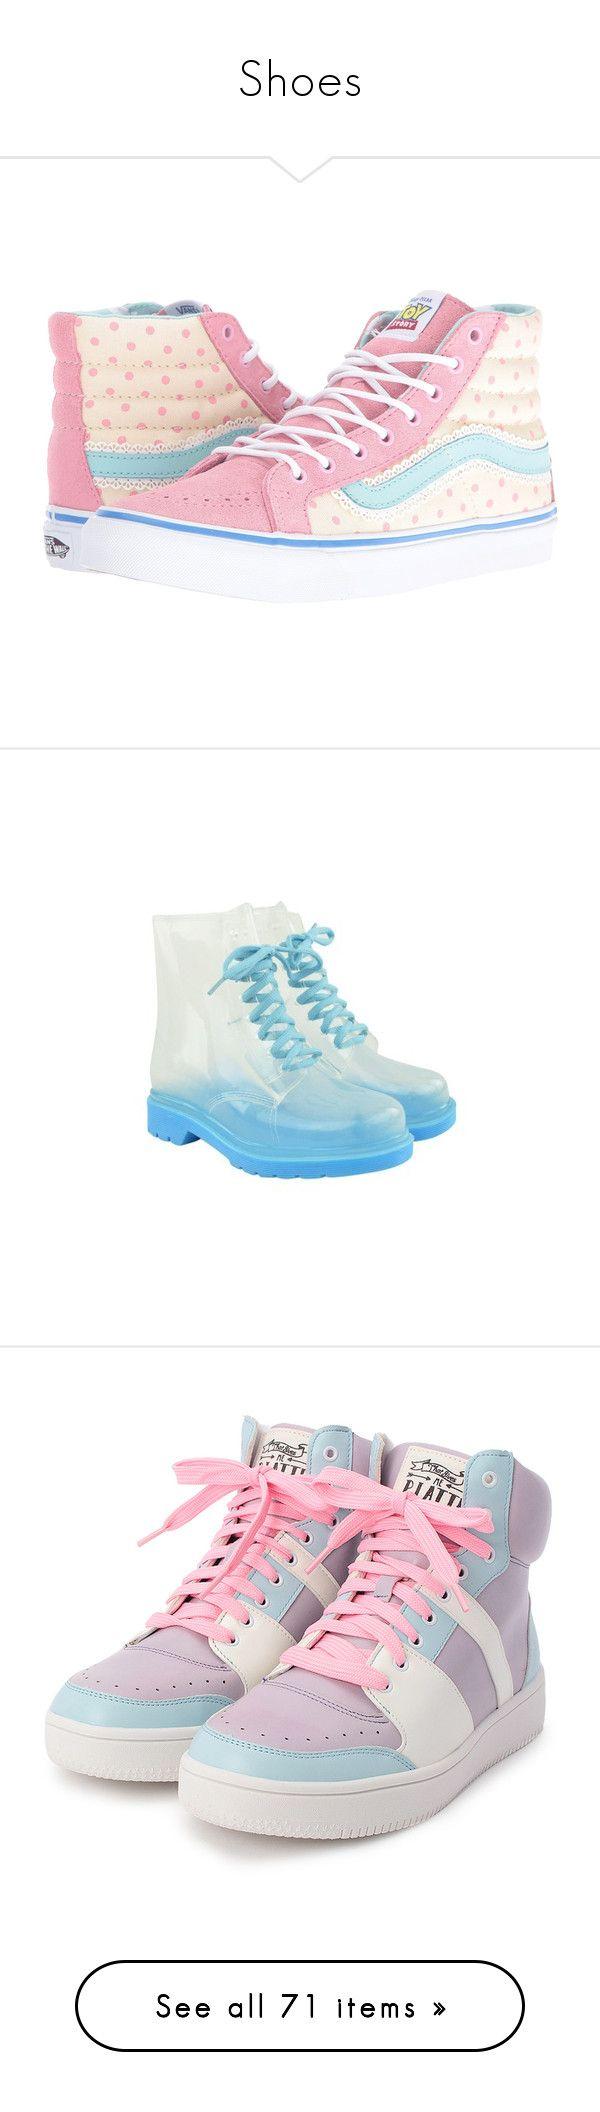 """""""Shoes"""" by pastelprincess152 ❤ liked on Polyvore featuring shoes, sneakers, vans, footwear, обувь, skate shoes, white hi tops, high top trainers, vans shoes and white high tops"""